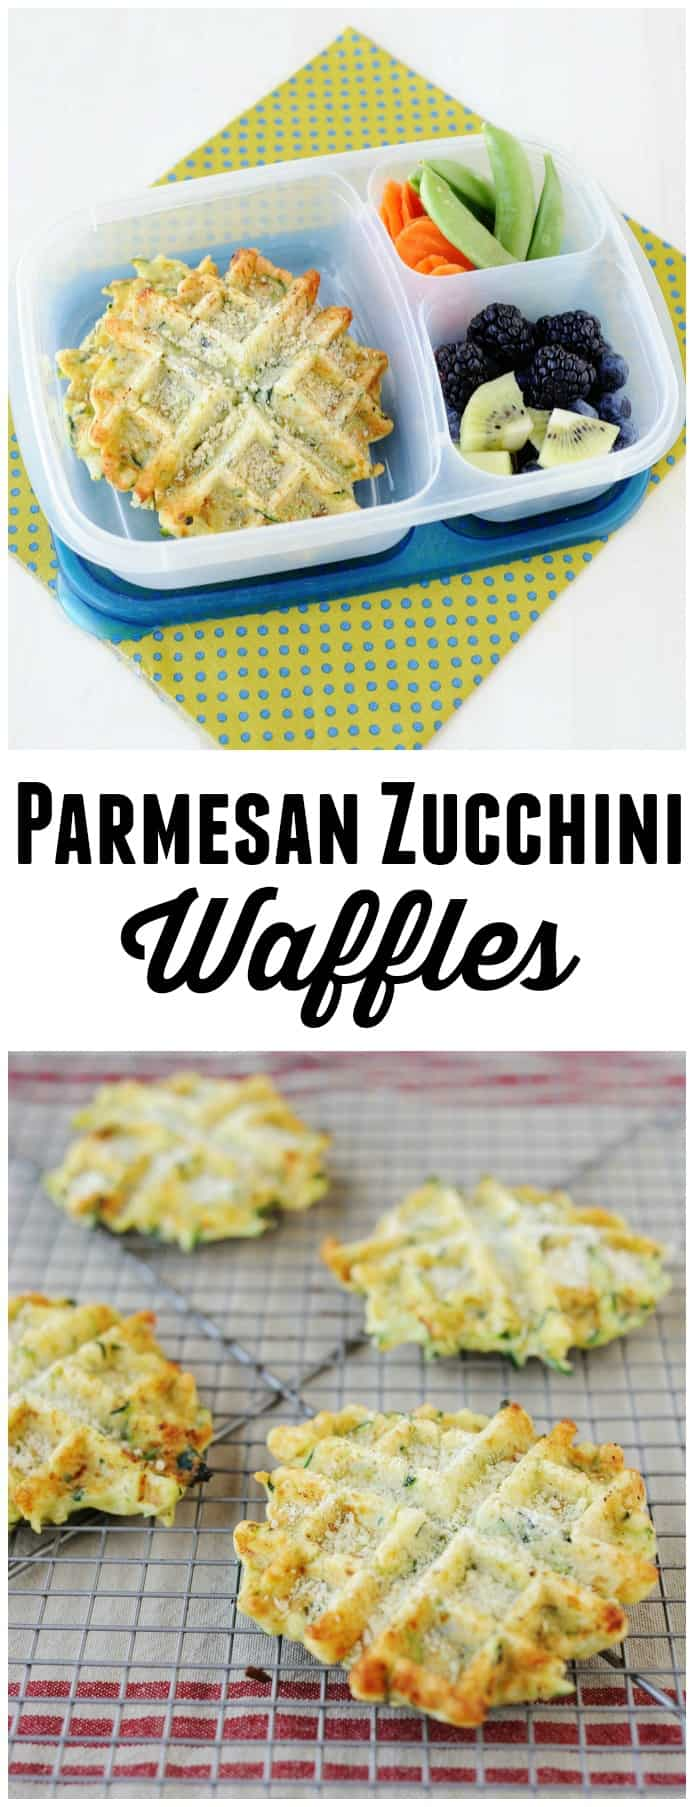 Need a way to use up zucchinis? This zucchini waffle recipe is easy to make and super delicious! Leftovers can be frozen or saved for later.